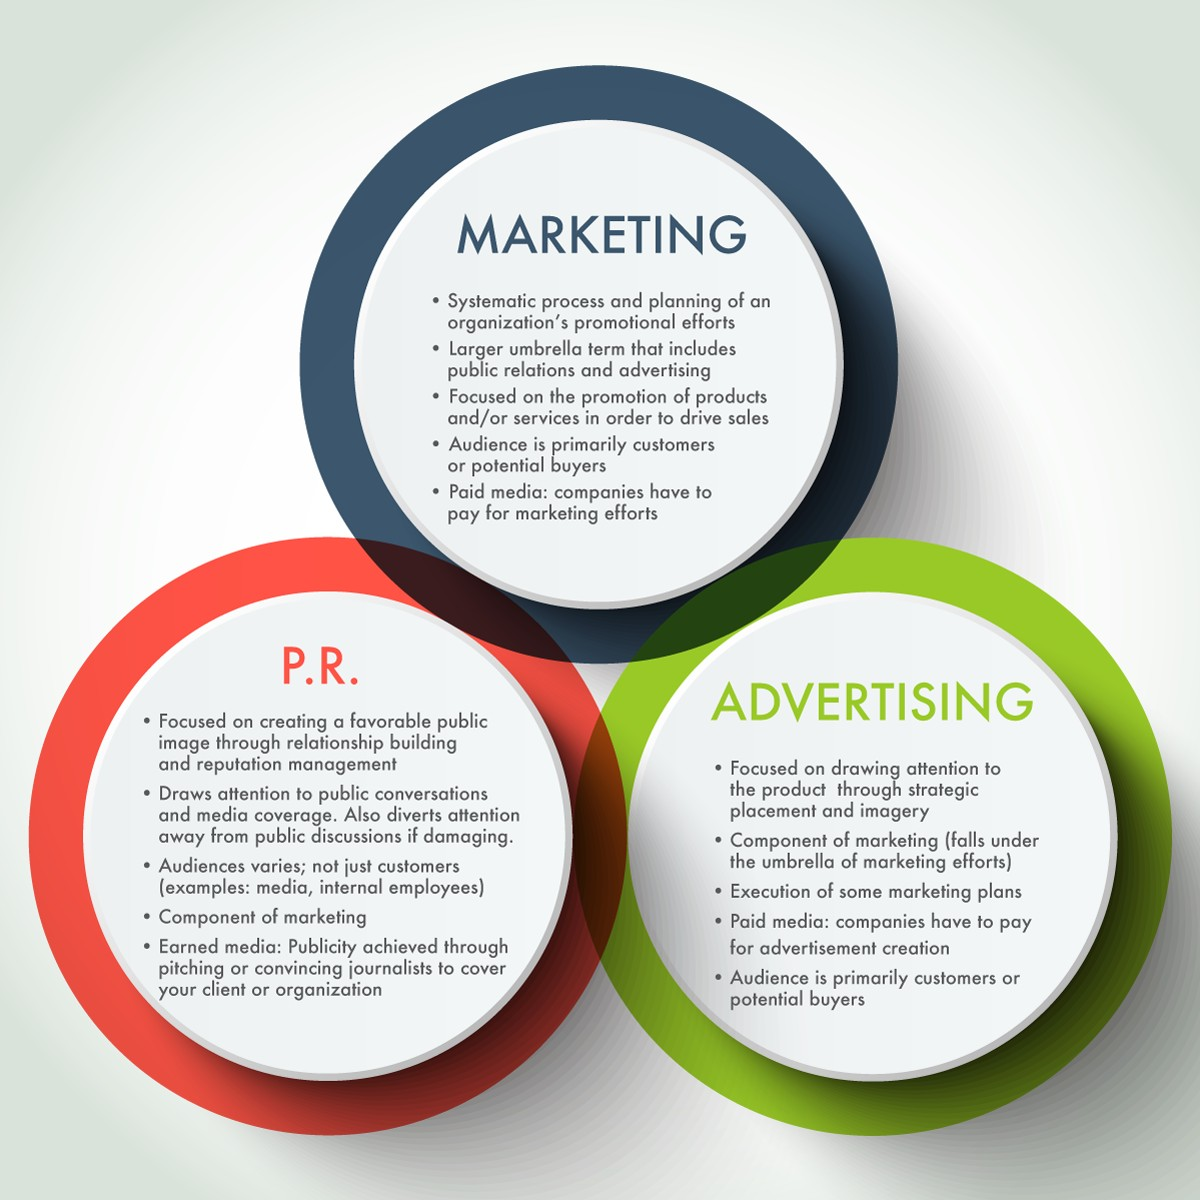 A venn diagram of marketing, P.R. and Advertising